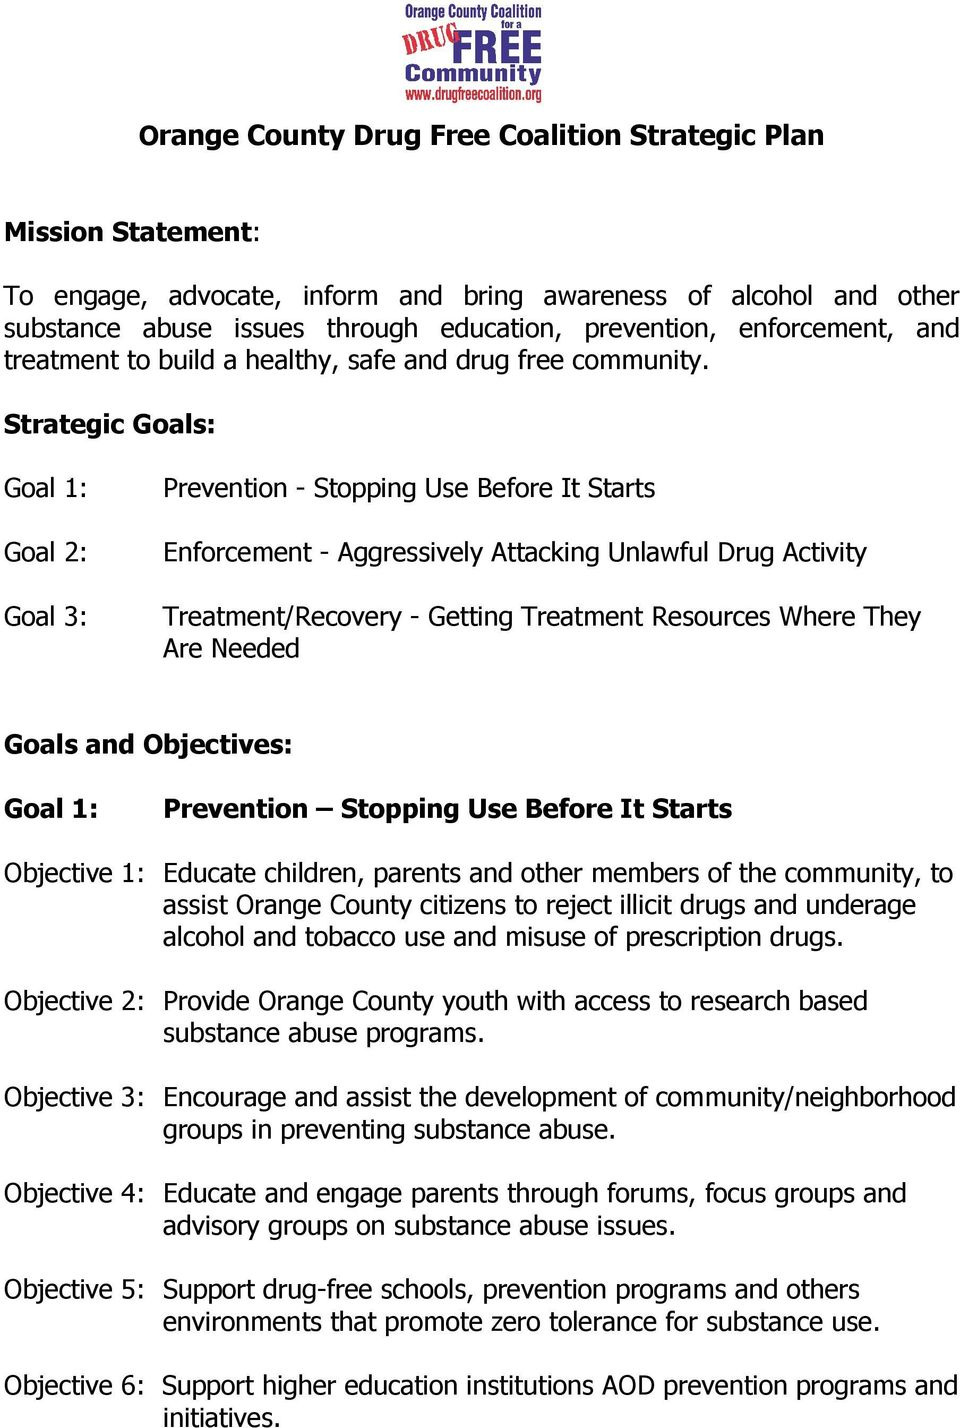 Strategic Goals: Goal 1: Goal 2: Goal 3: Prevention - Stopping Use Before It Starts Enforcement - Aggressively Attacking Unlawful Drug Activity Treatment/Recovery - Getting Treatment Resources Where